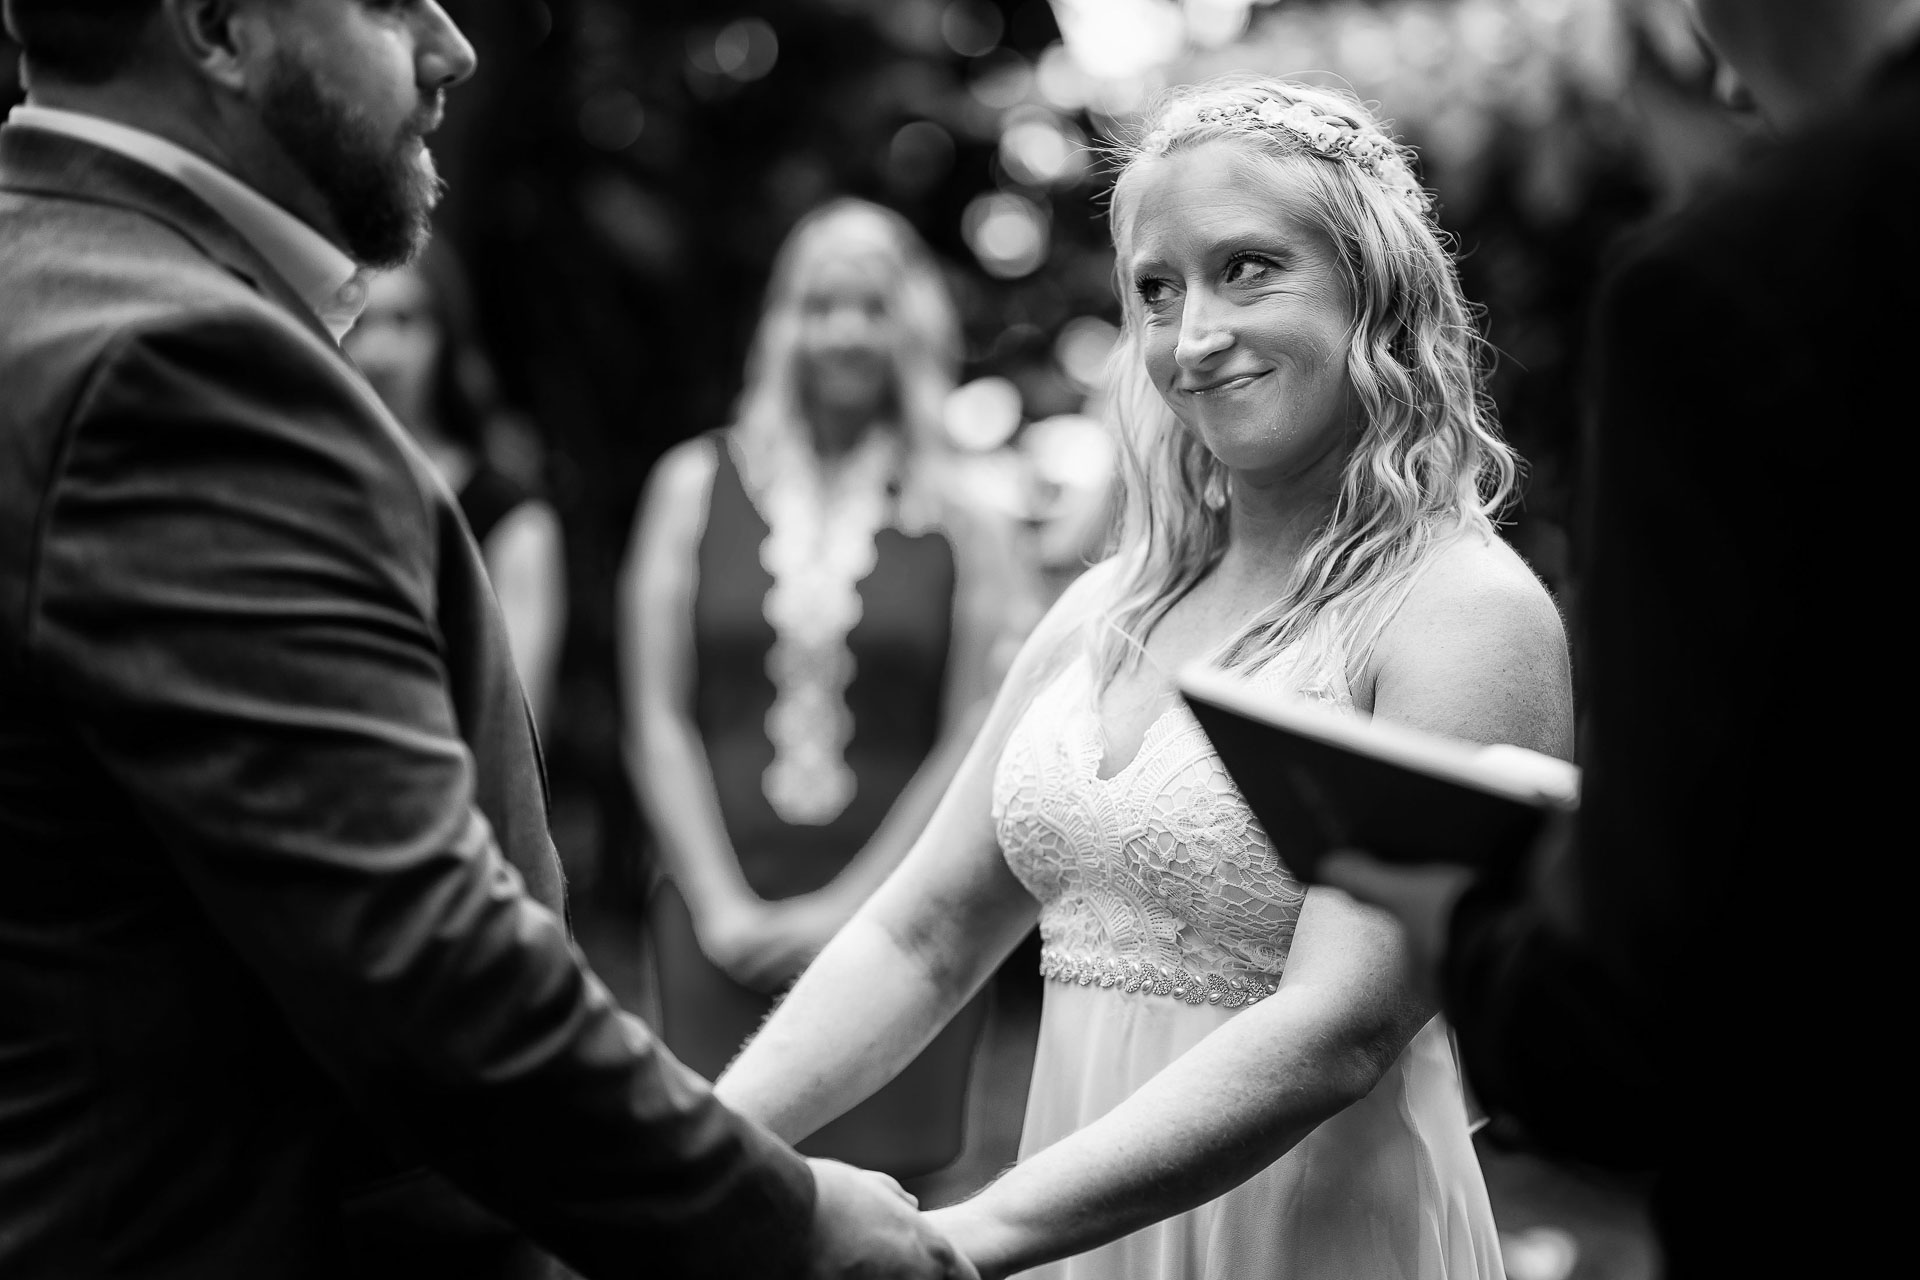 BW Costa Rica Outdoor Elopement Ceremony Picture | The bride gives the groom a look